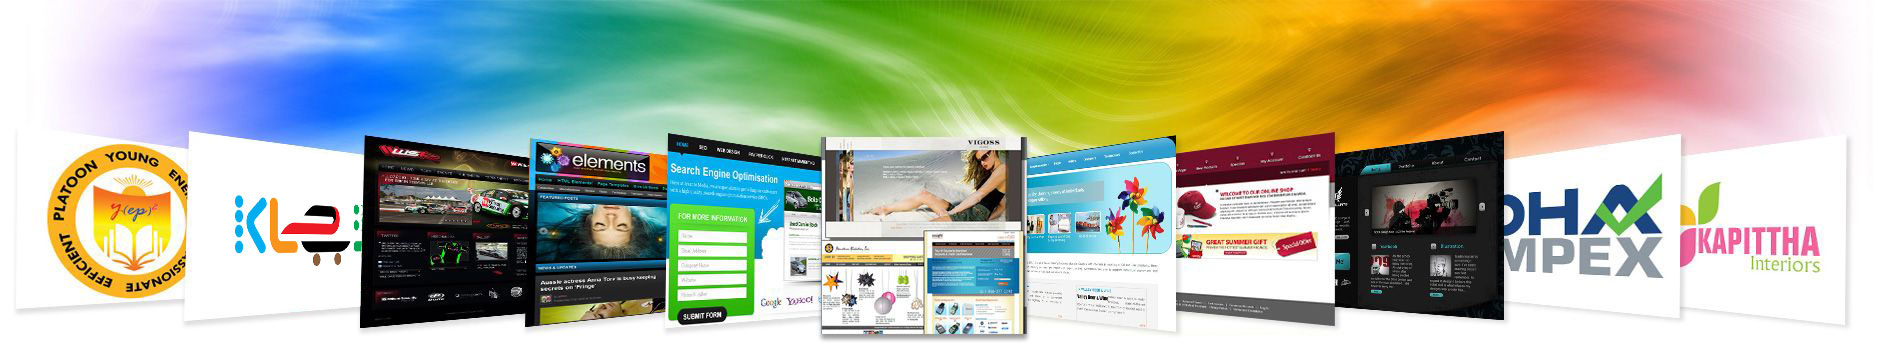 local website designer portfolio, best local web site designer, best portfolio of webdesign hyderabad, web design ameerpet hyderabad, website design ameerpet hyderabad, freelance web design ameerpet hyderabad, freelance web designer ameerpet hyderabad, best web design company ameerpet hyderabad, web design kukatpally hyderabad, web design hightech city hyderabad, web design hitec city hyderabad, web design dilsukhnagar hyderabad, web design company dilsukhnagar hyderabad, freelance web design dilsukhnagar hyderabad, freelance web design hitec city hyderabad, web design s r nagar hyderabad, web design uppal hyderabad, web design khairatabad hyderabad, web design gachibowli hyderabad, jntu web design hyderabad, freelance web design jntu hyderabad